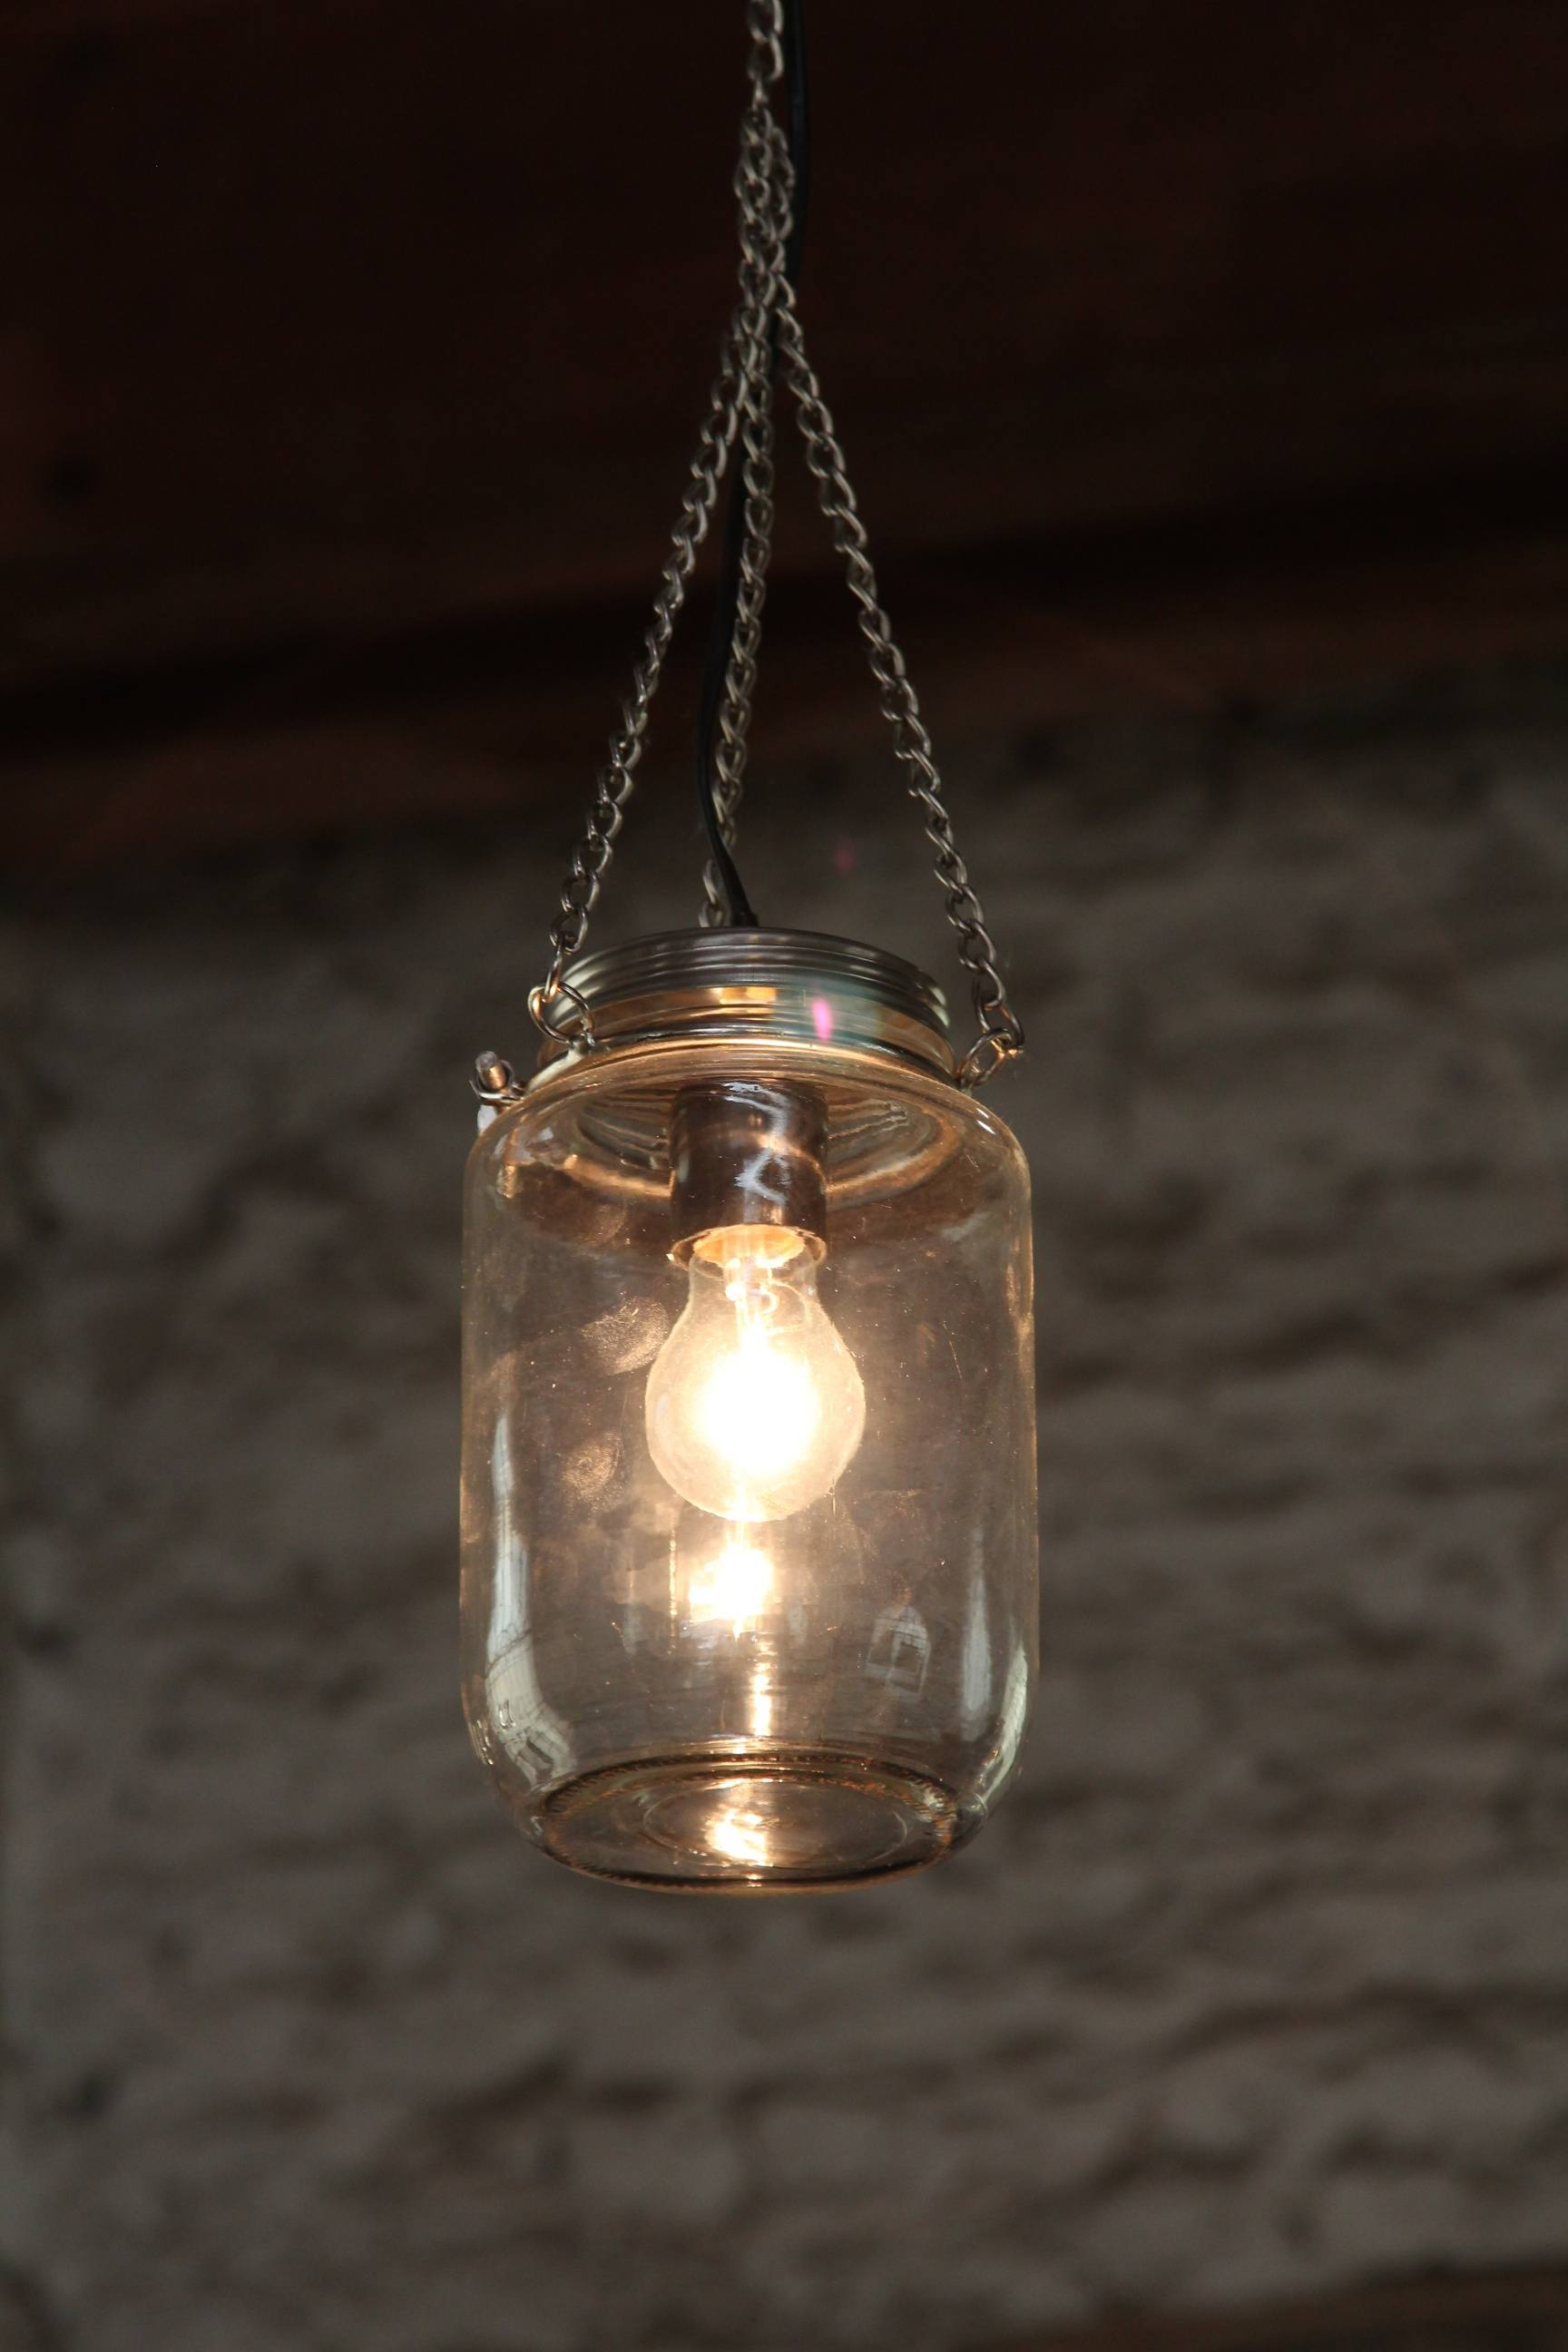 Industial lamp in a jar